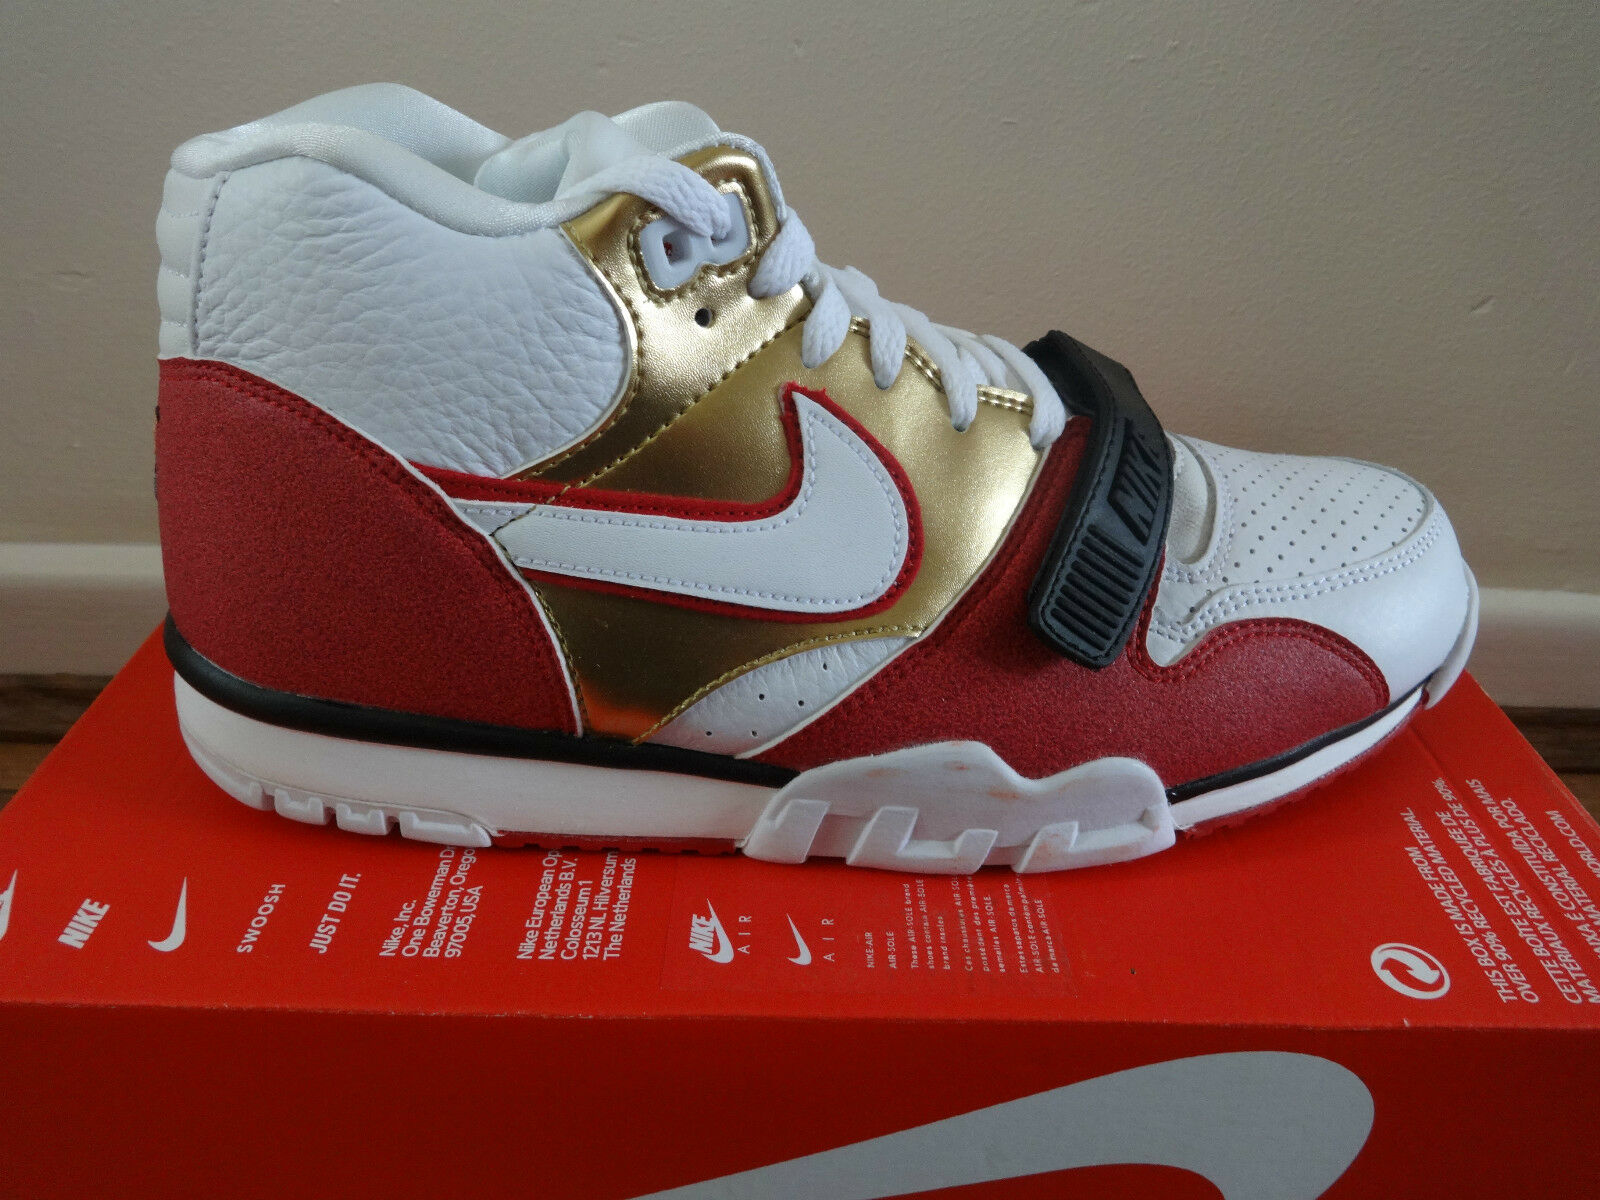 Nike Air Trainer 1 Mid PRM QS homme  trainers chaussures Baskets 607081 101  chaussures trainers 825ff8